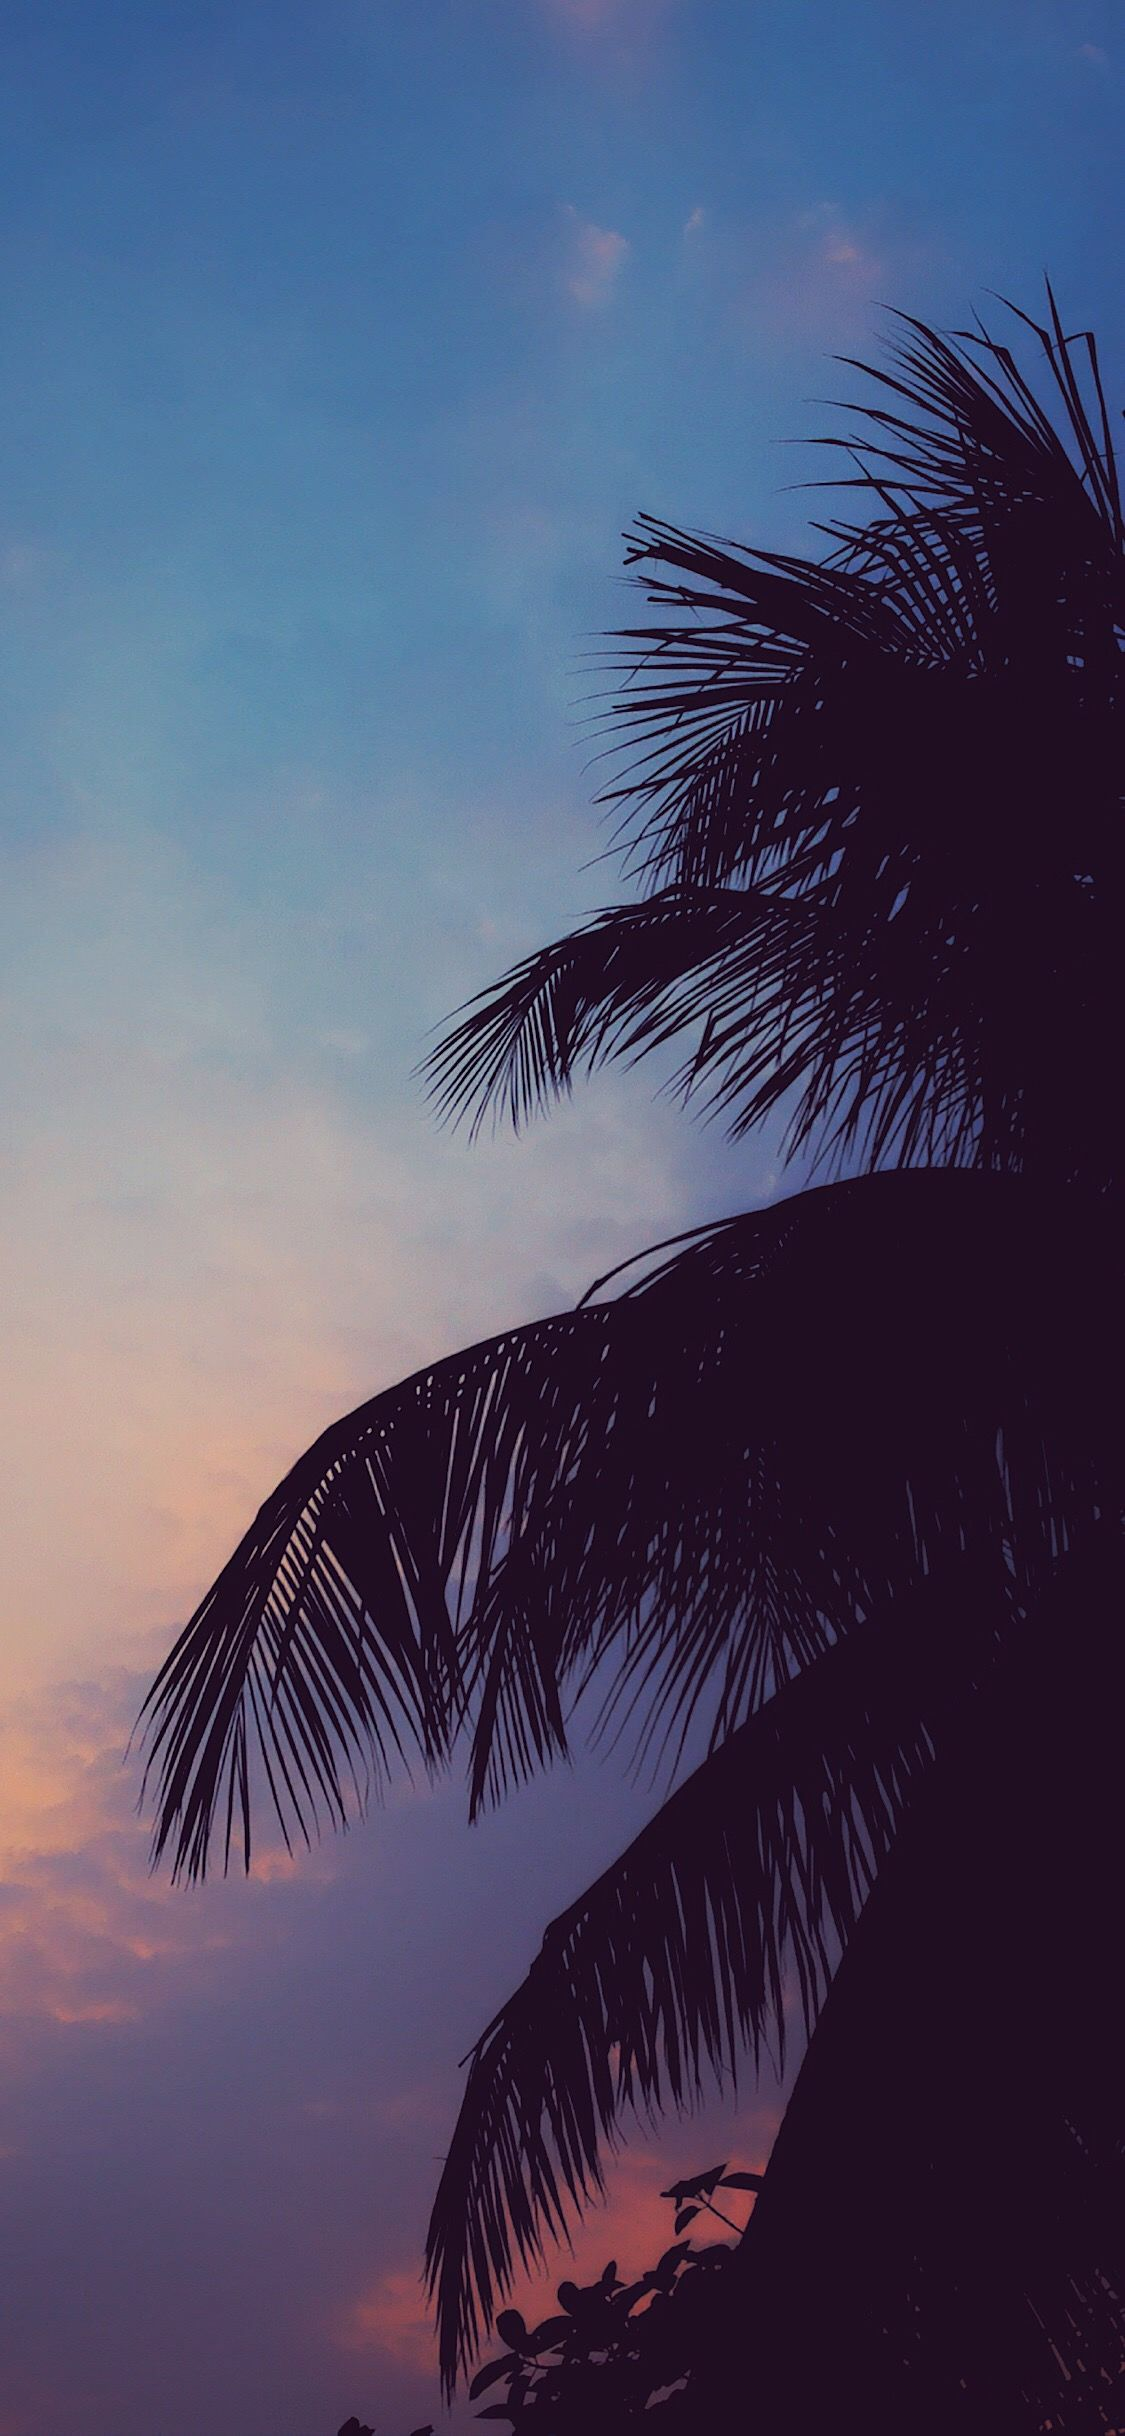 Chill Vibes Chill Wallpaper Iphone Wallpaper Tumblr Aesthetic Sky Aesthetic